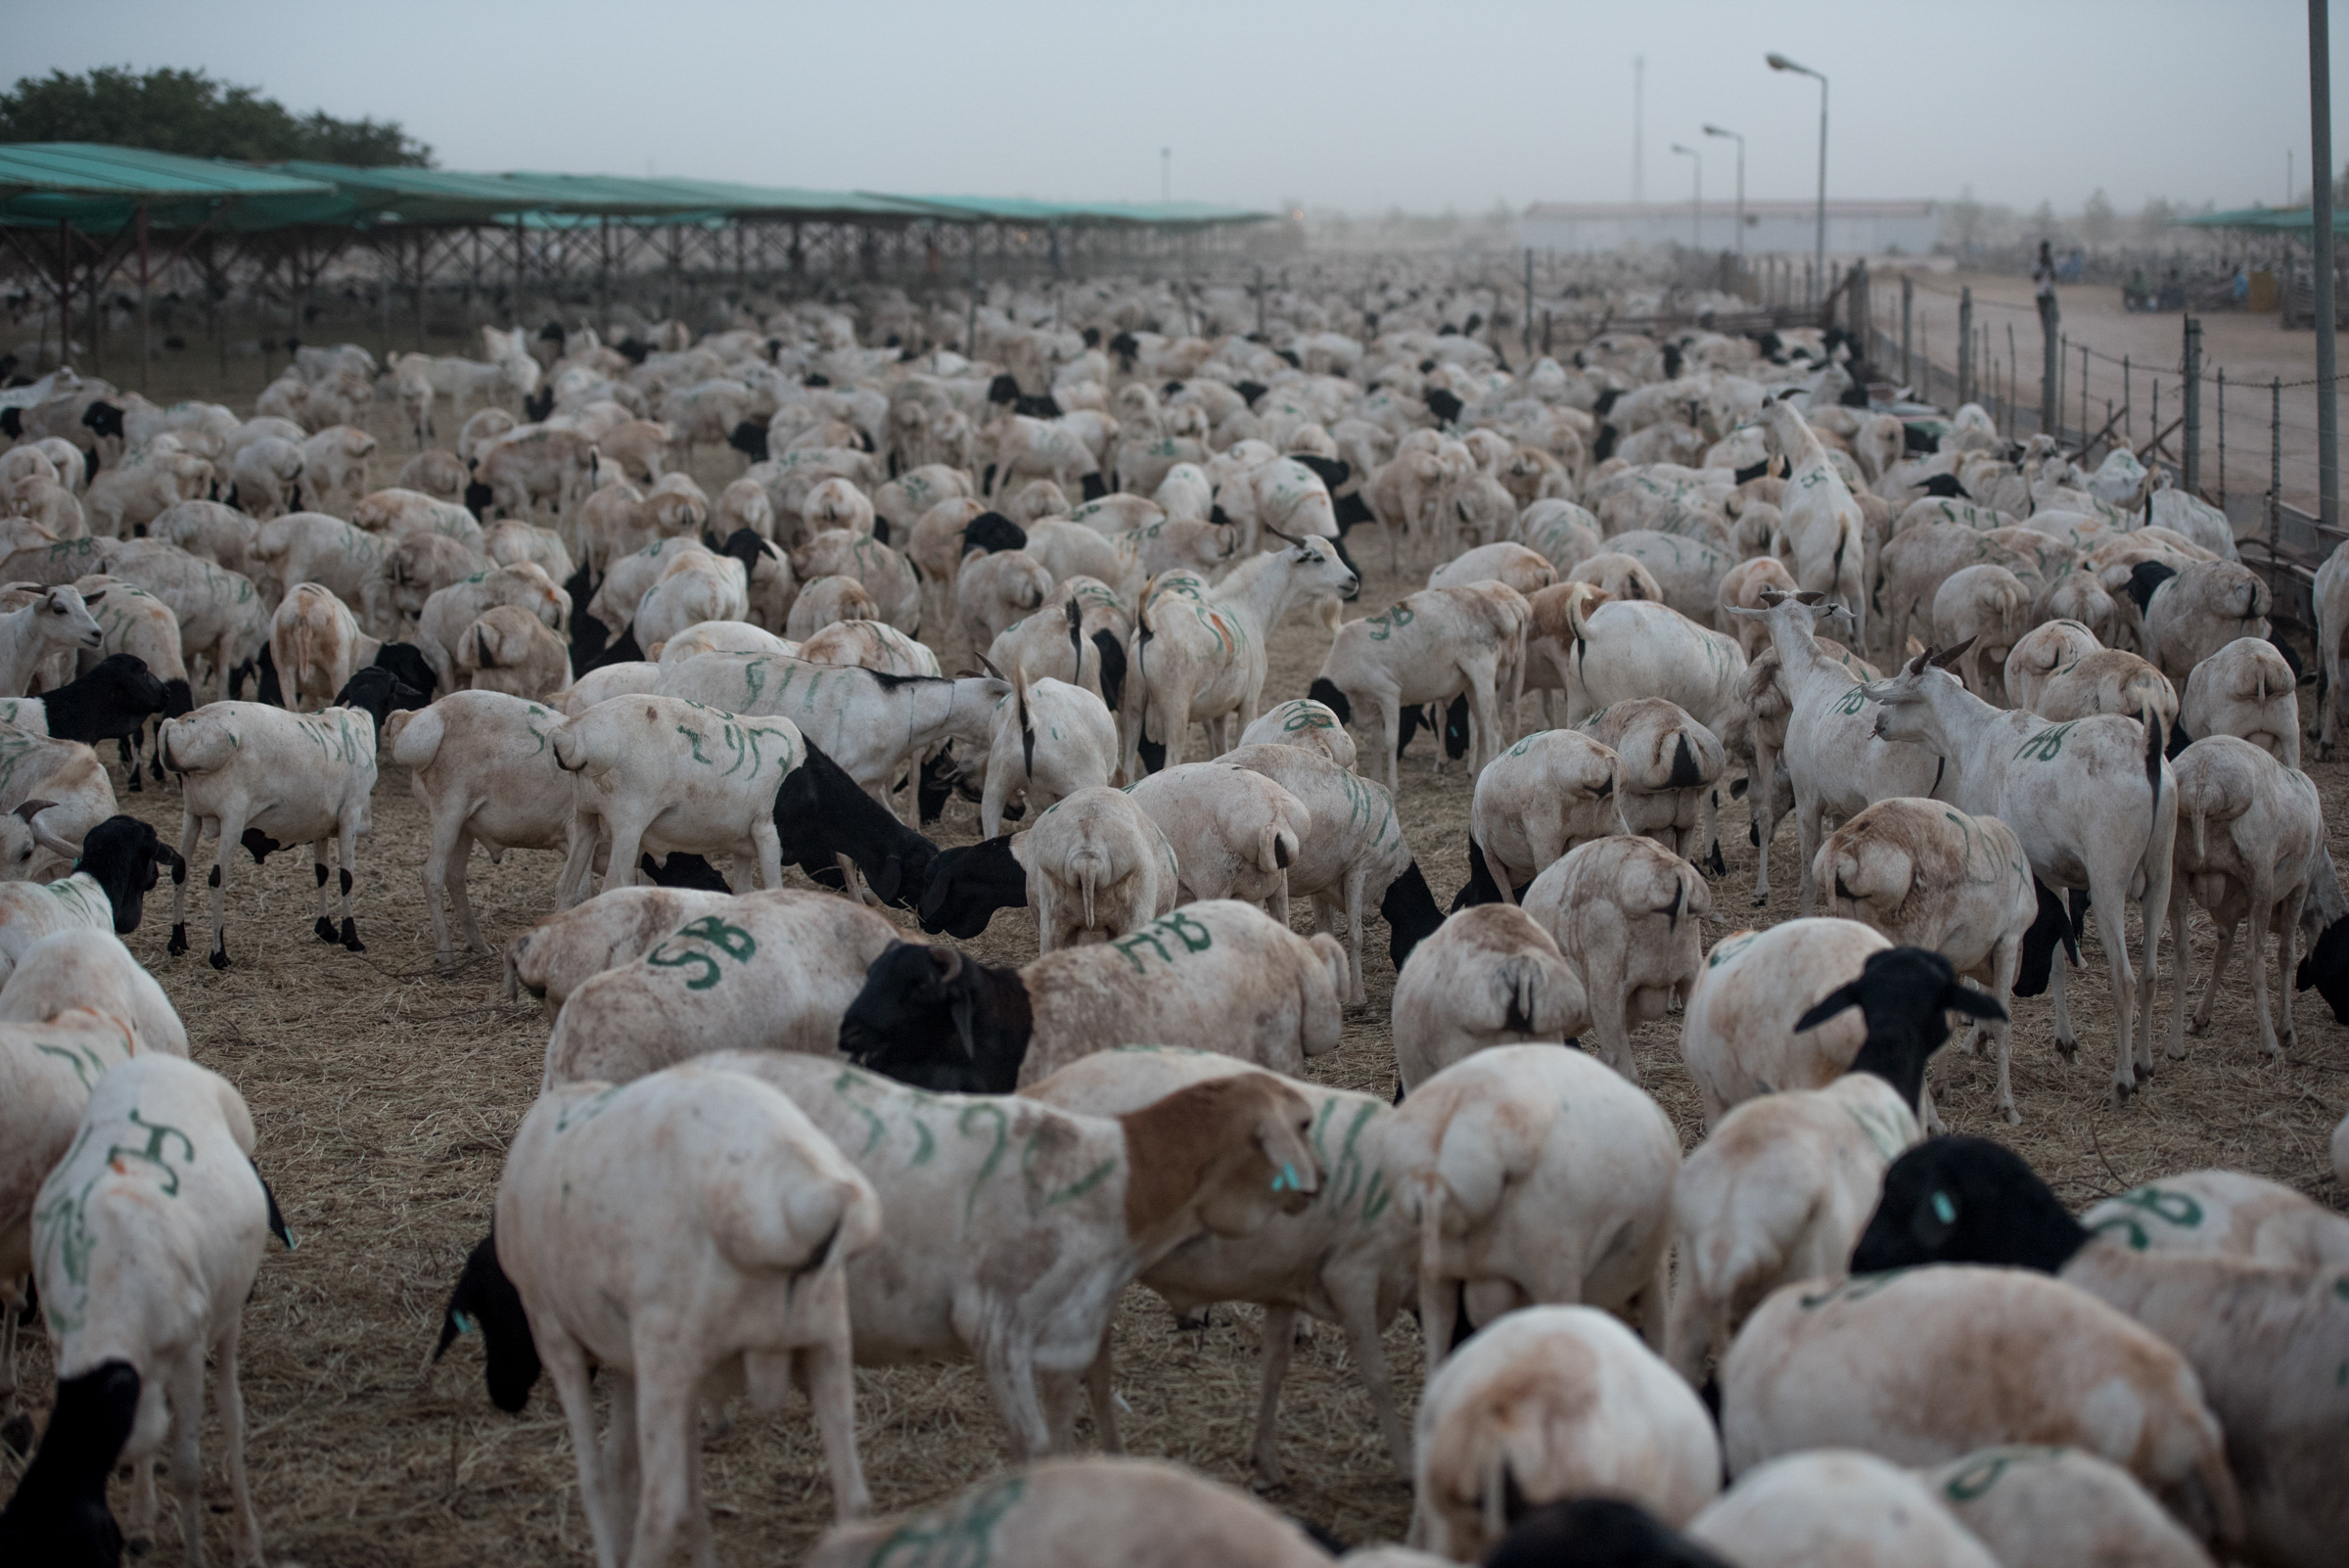 Some of nearly a million goats and sheep wait at the Berbera port in Somaliland on August 16, 2016 before being shipped to Saudi Arabia for the Hajj.